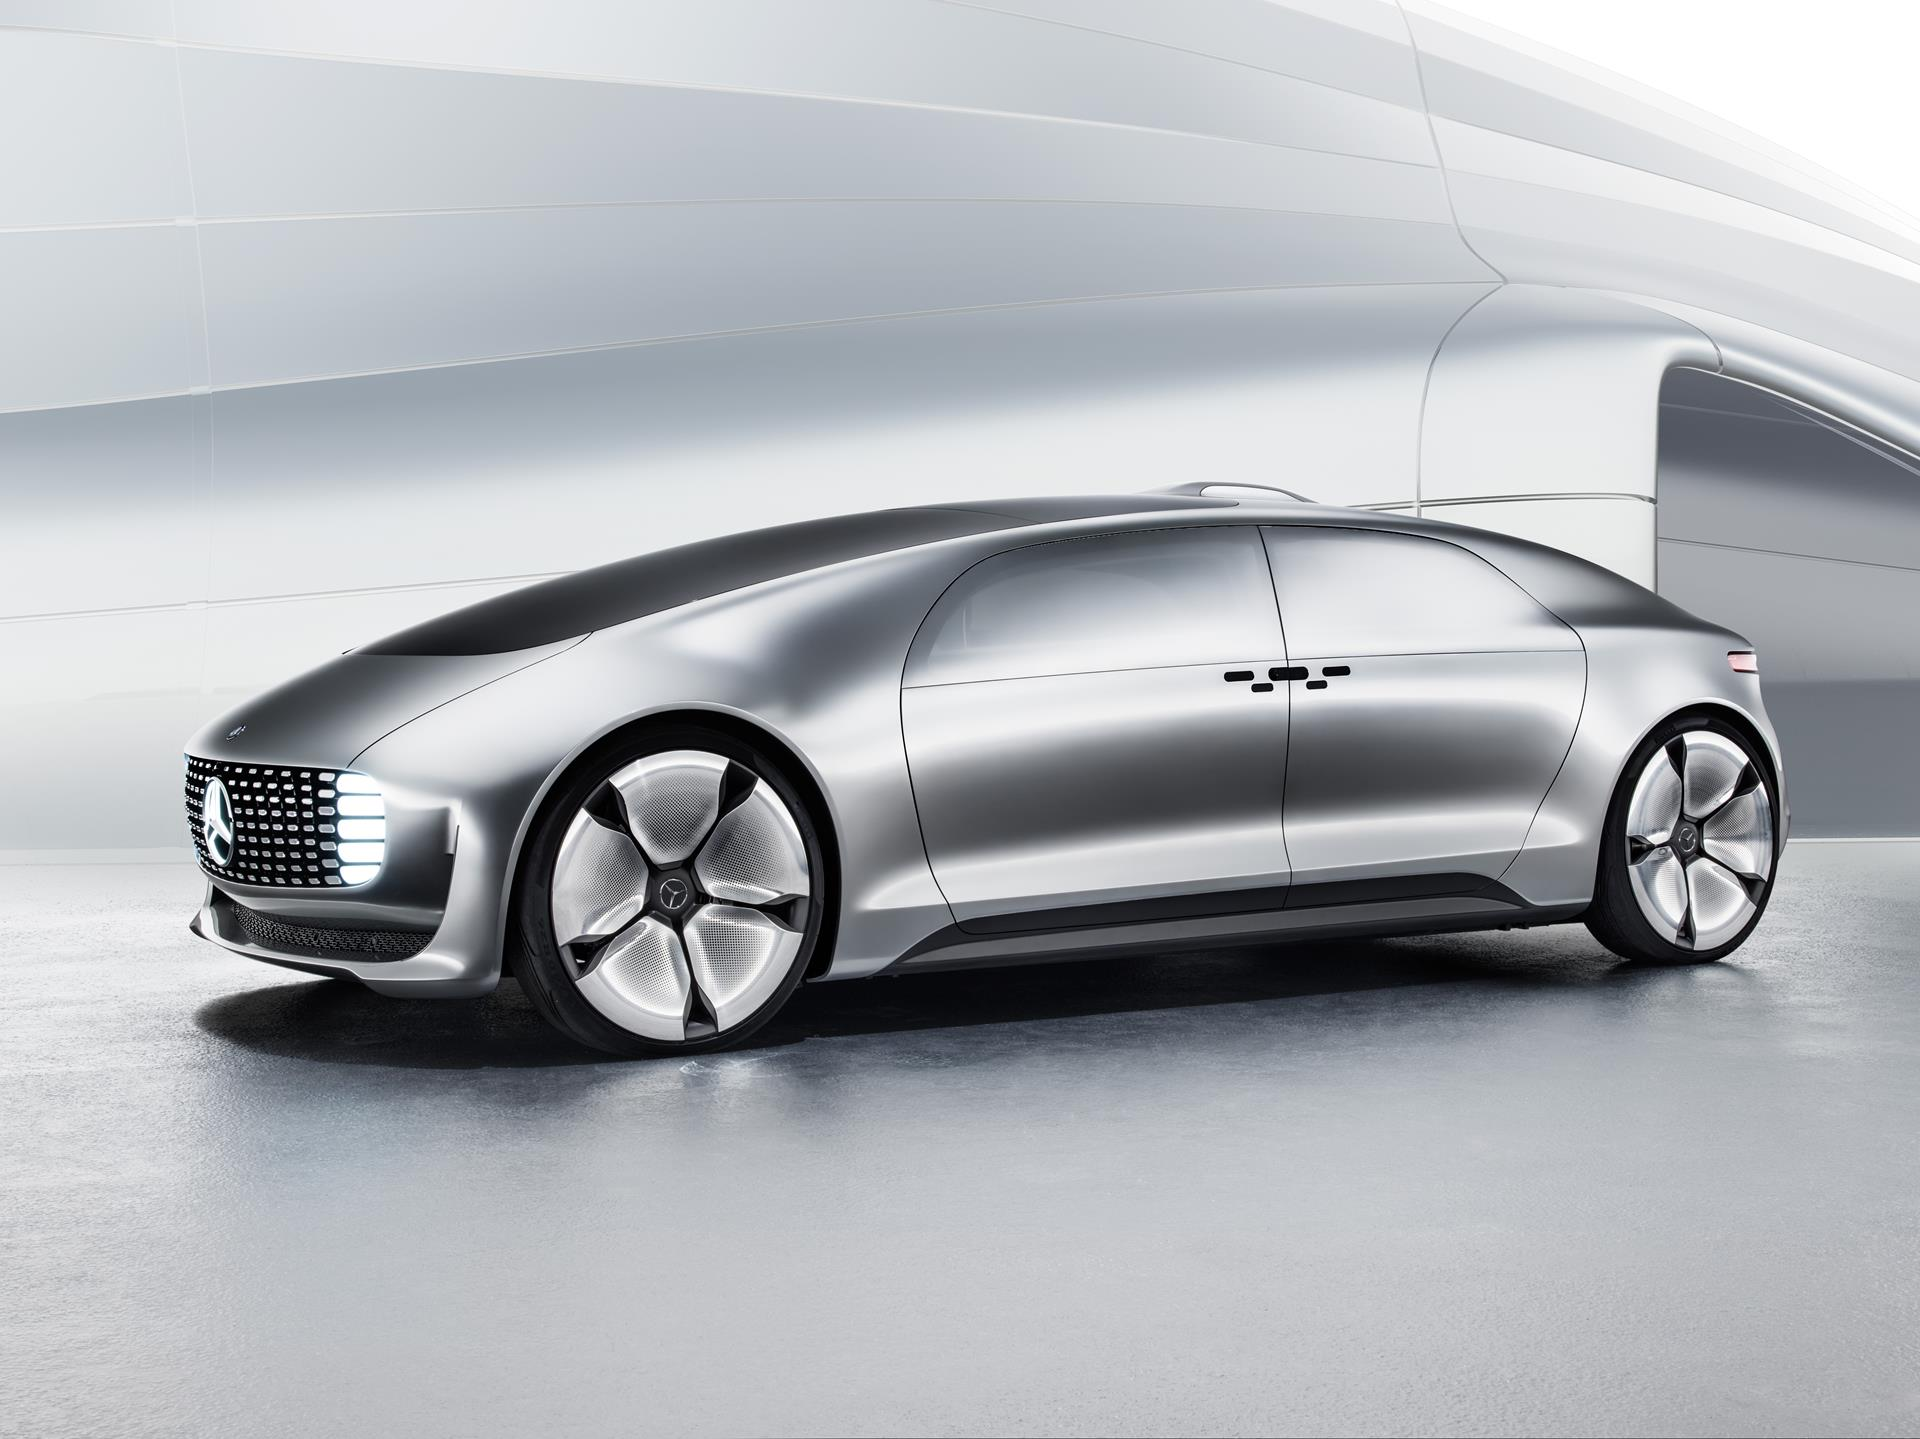 2015 mercedes benz f 015 luxury in motion concept for Mercedes benz small car